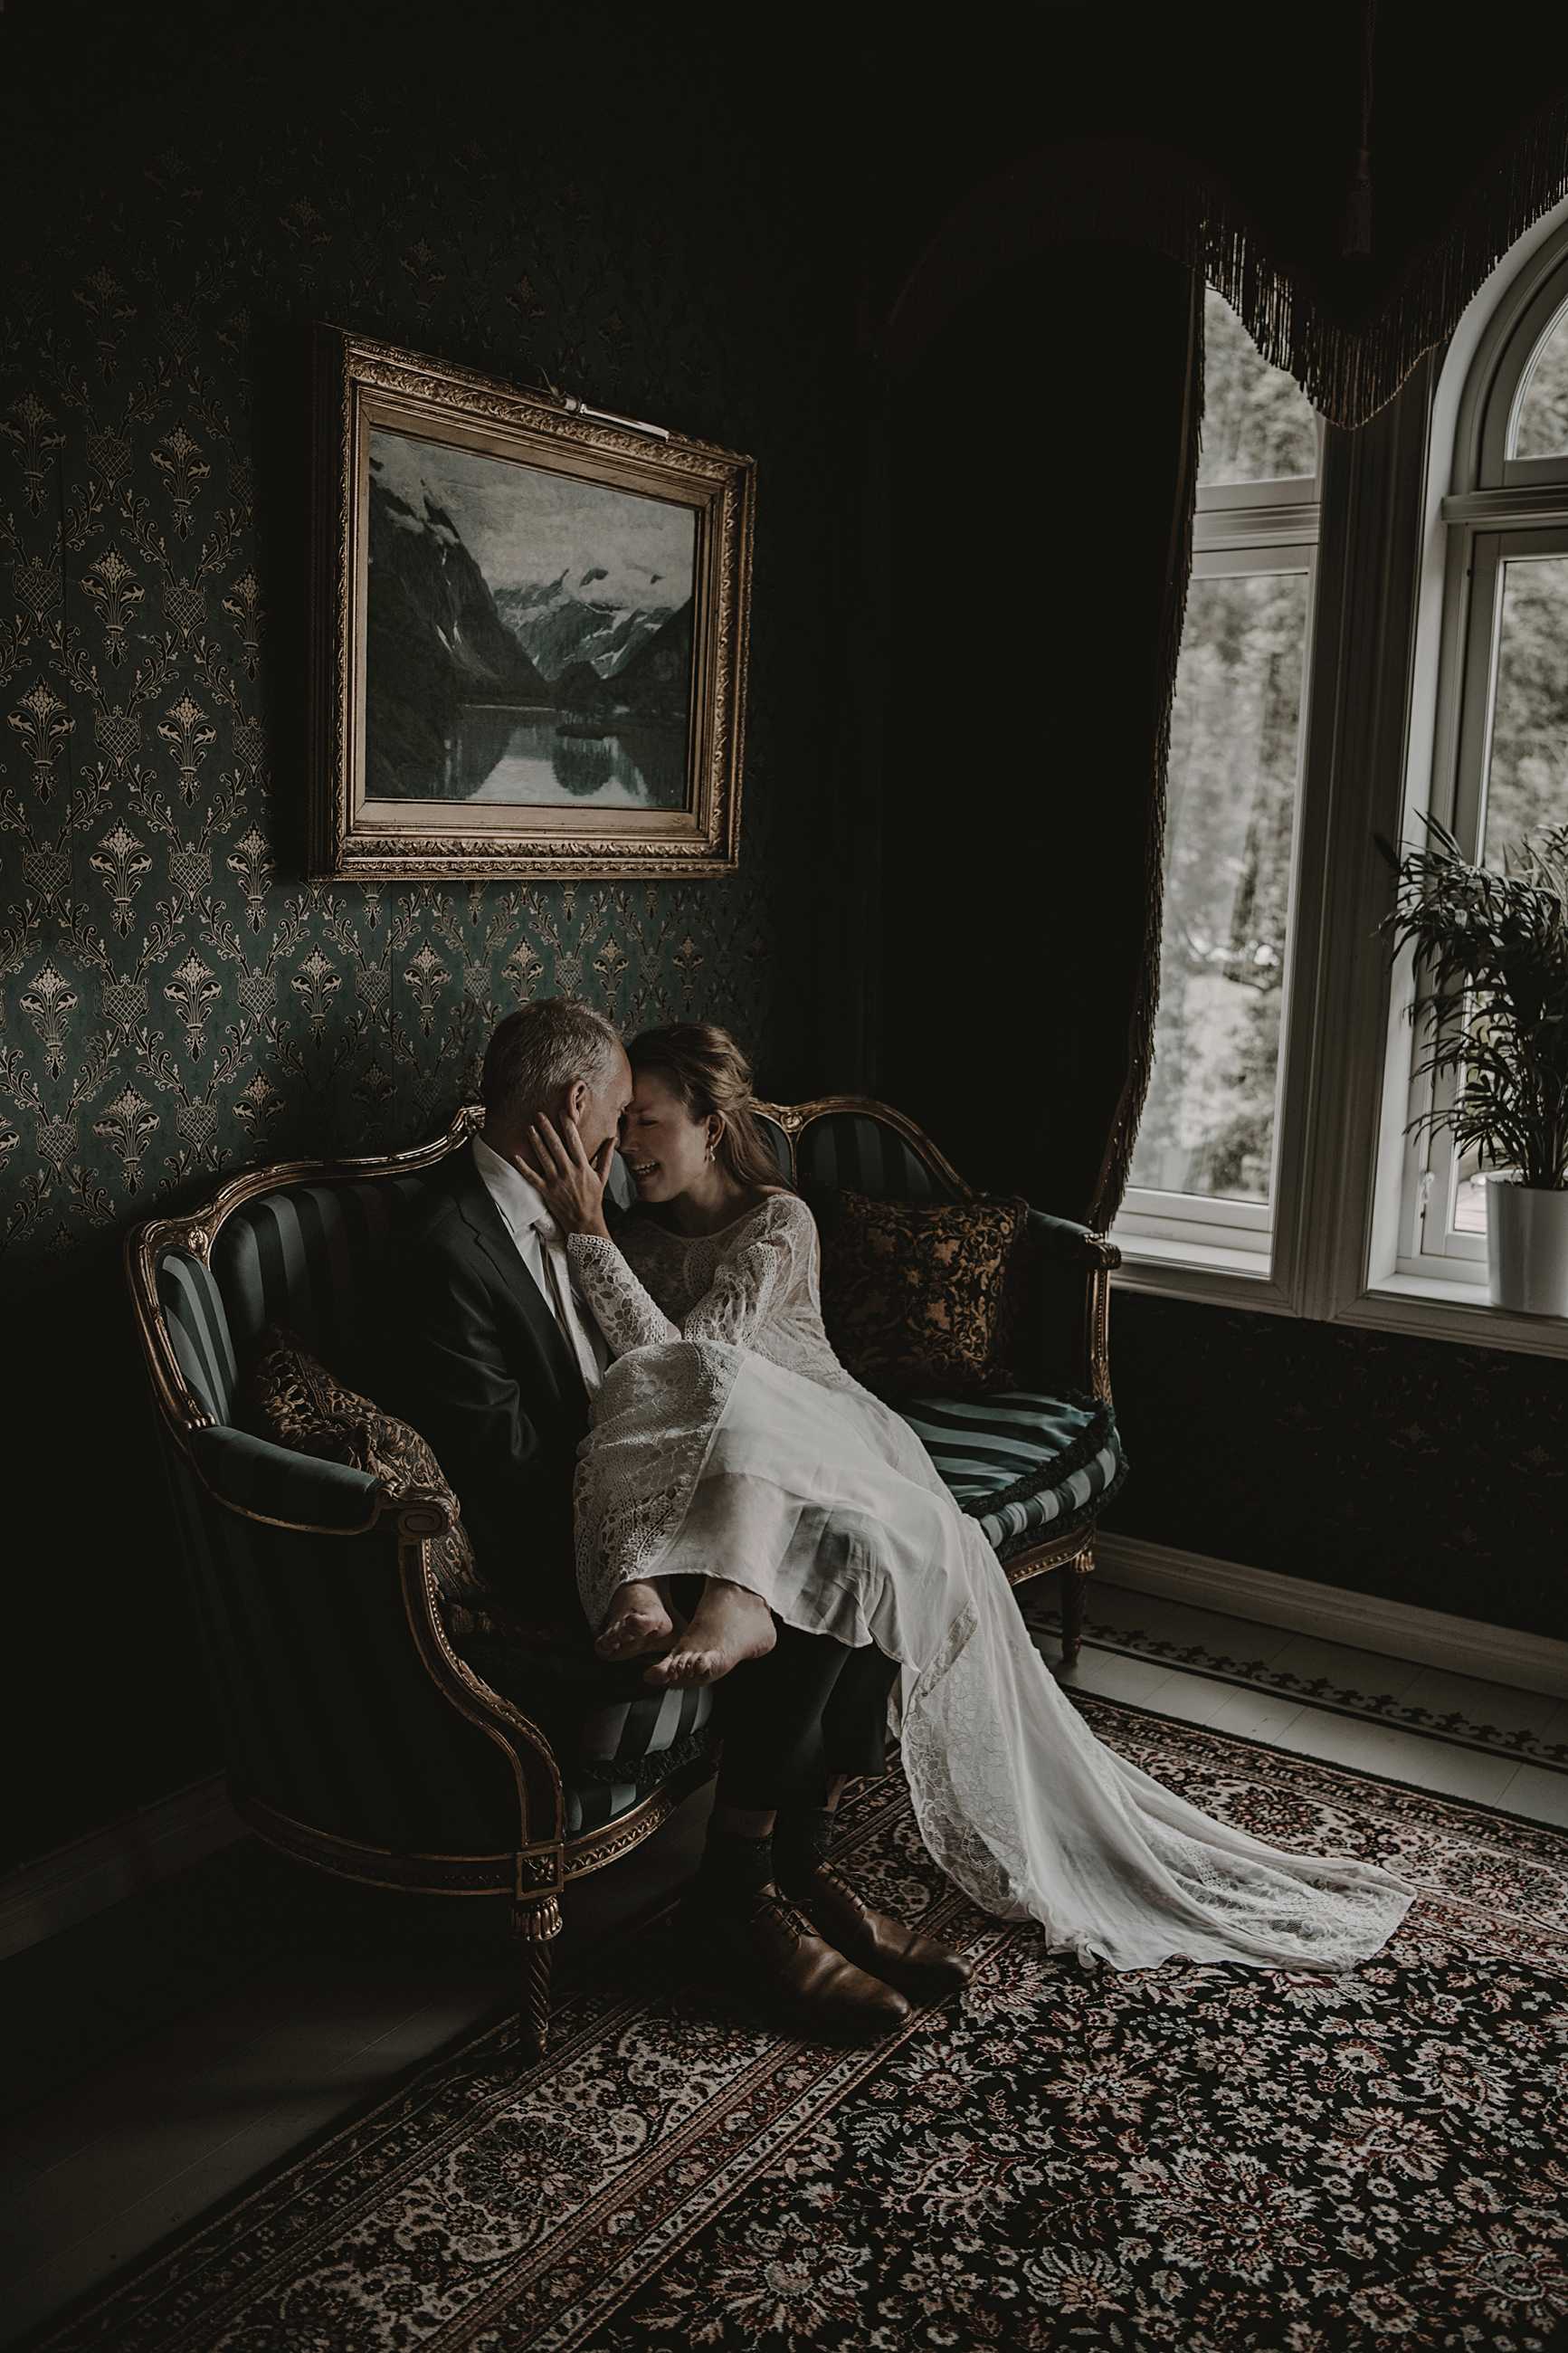 Couple on loveseat - photo by Frøydis